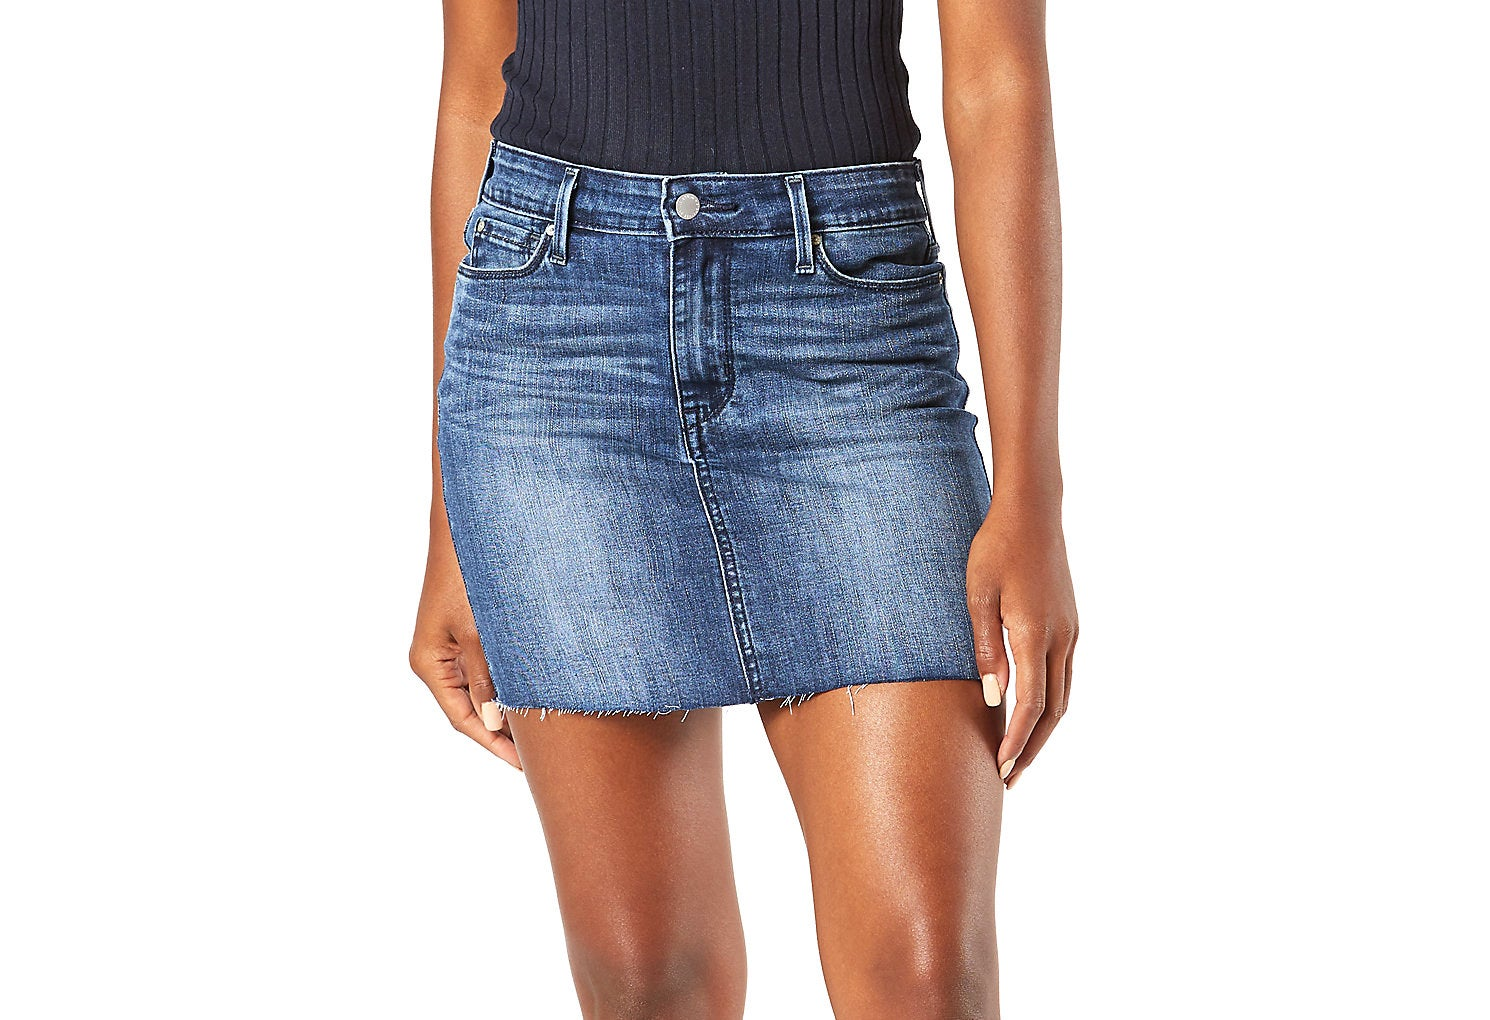 levi's women's denim skirt